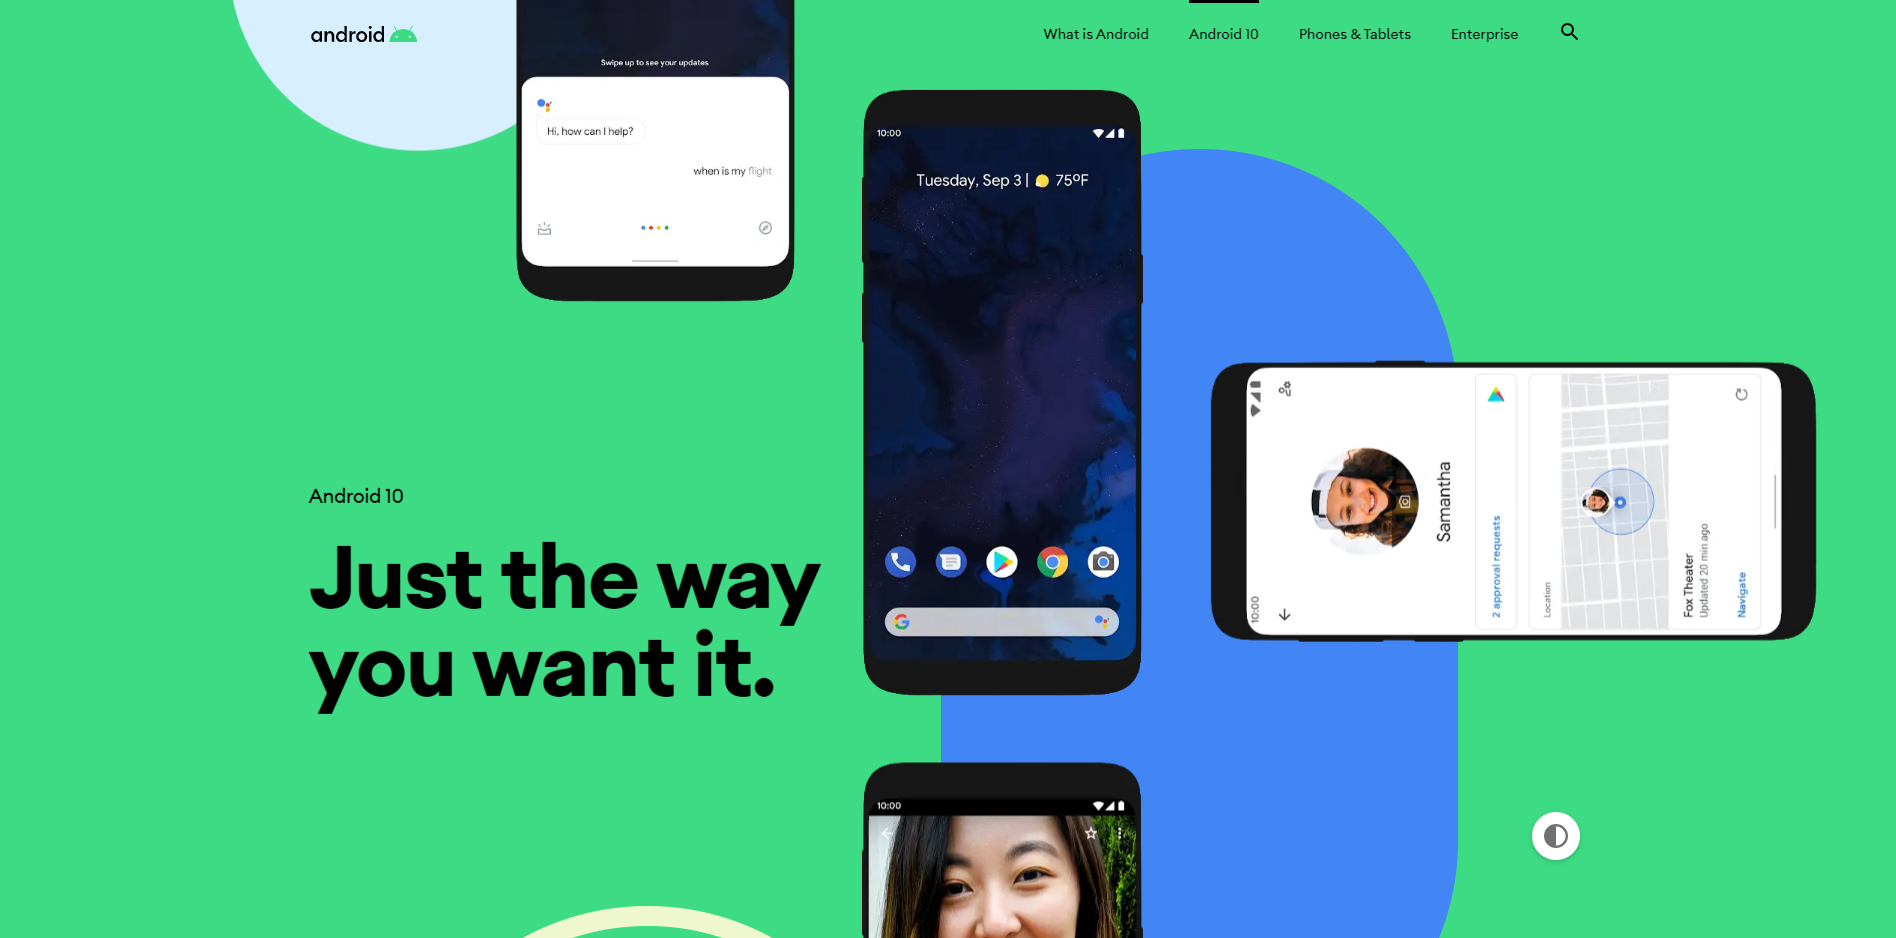 the android 10 landing page